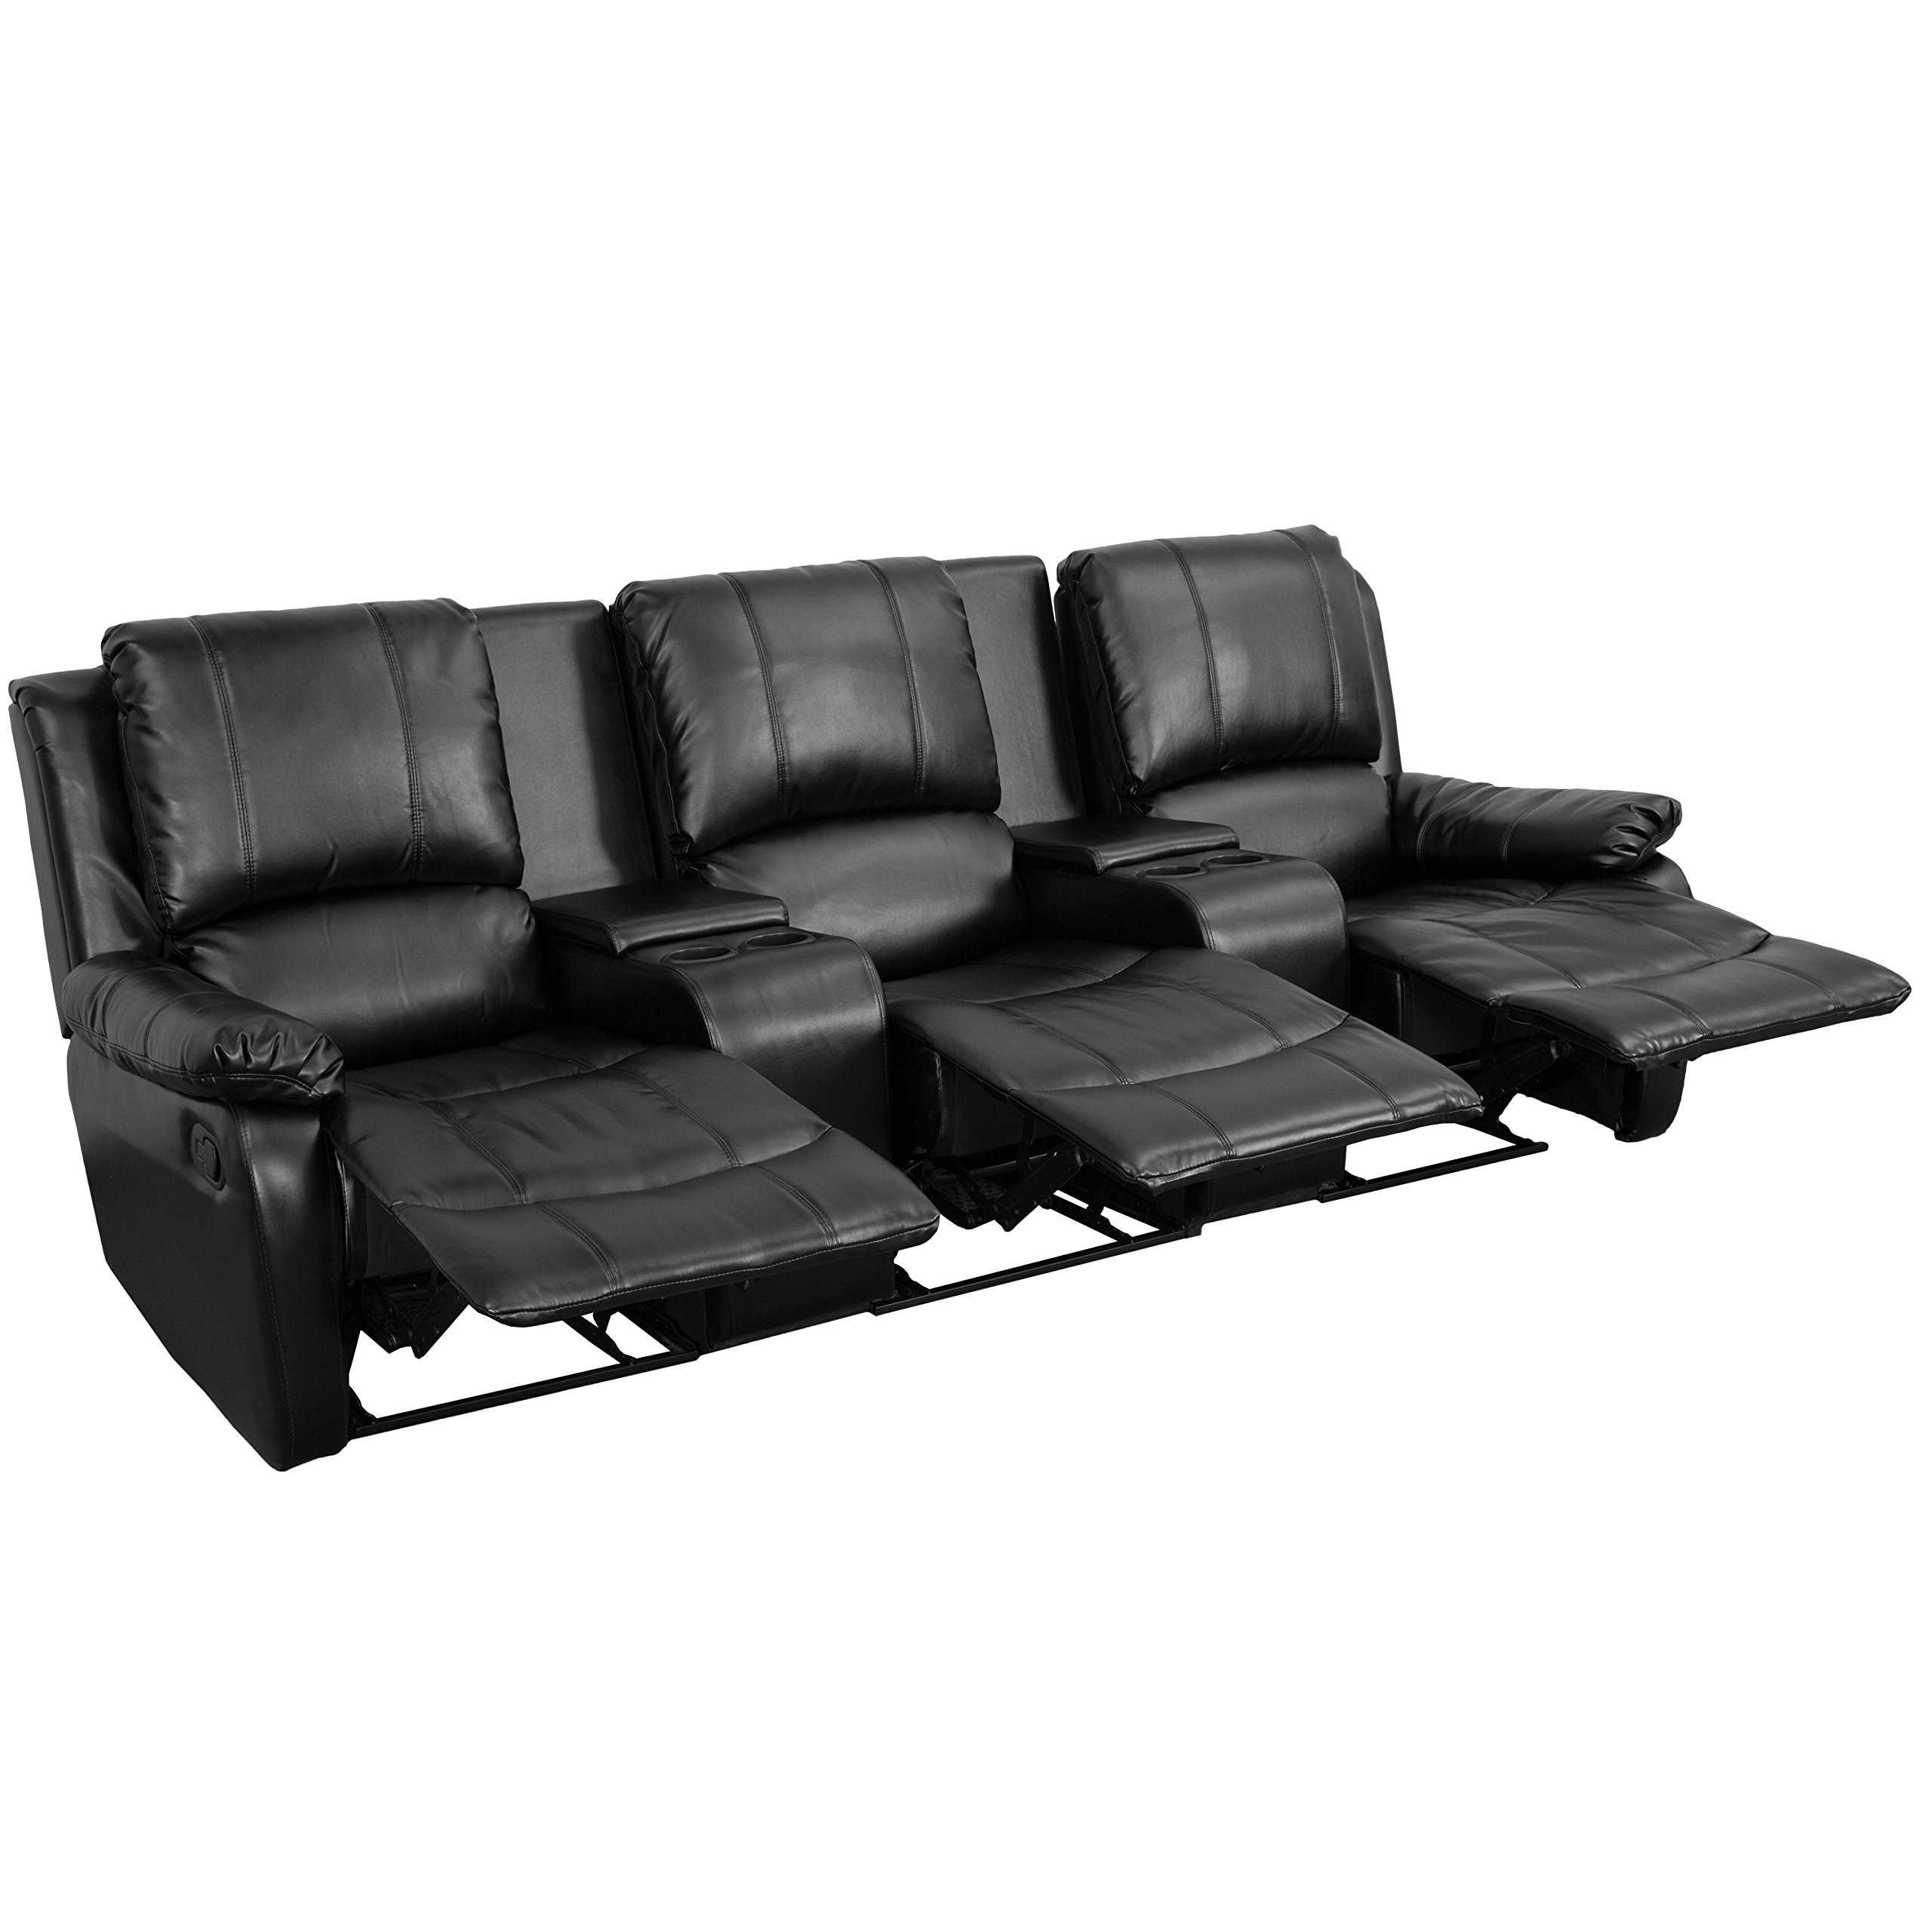 Flash Furniture Allure Series 3-Seat Reclining Pillow Back Black Leather Theater Seating Unit with Cup Holders by Flash Furniture